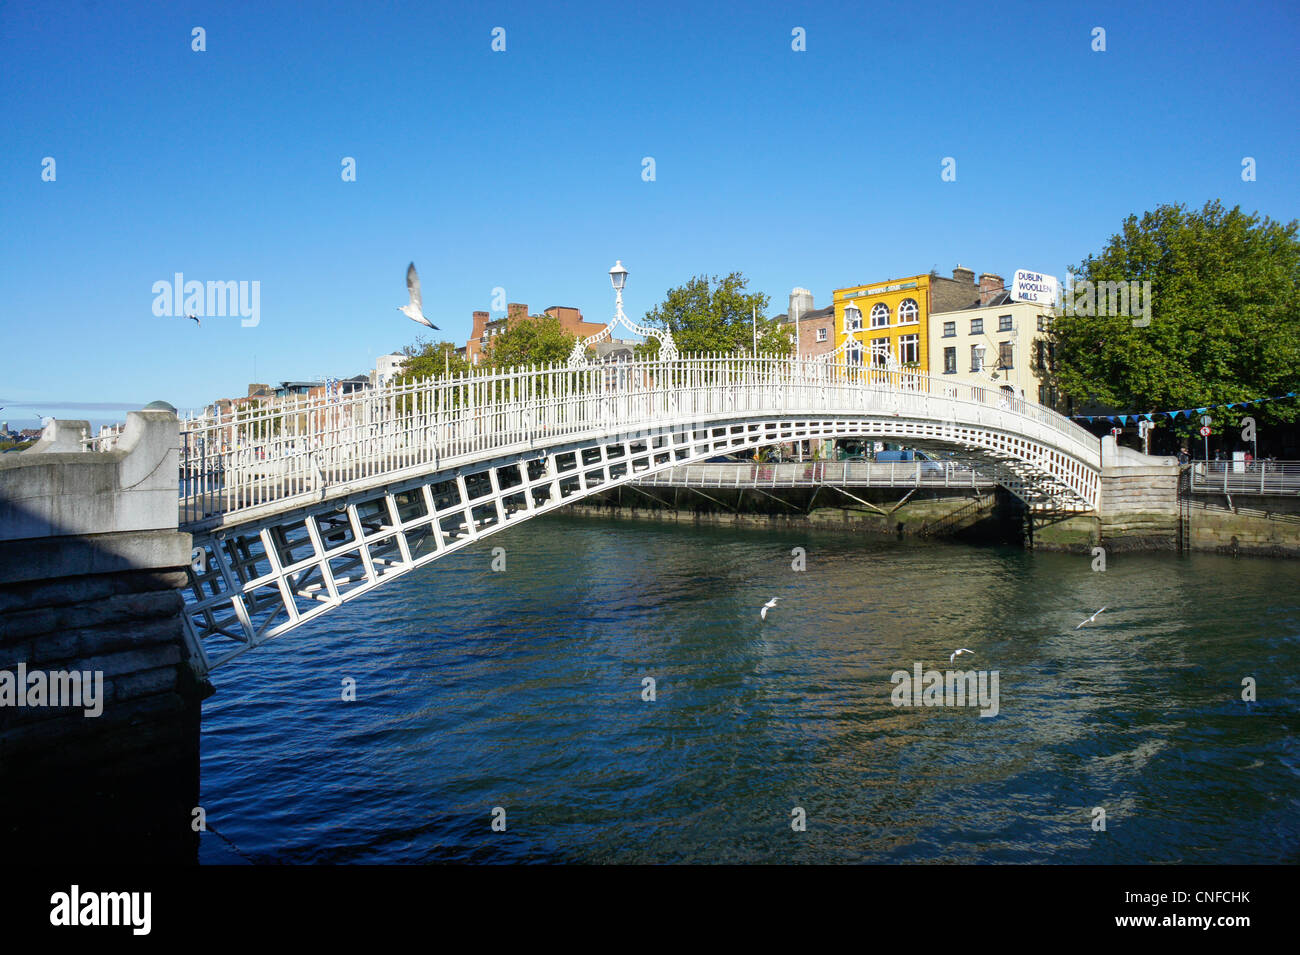 Ha'penny Bridge in Dublin - Stock Image